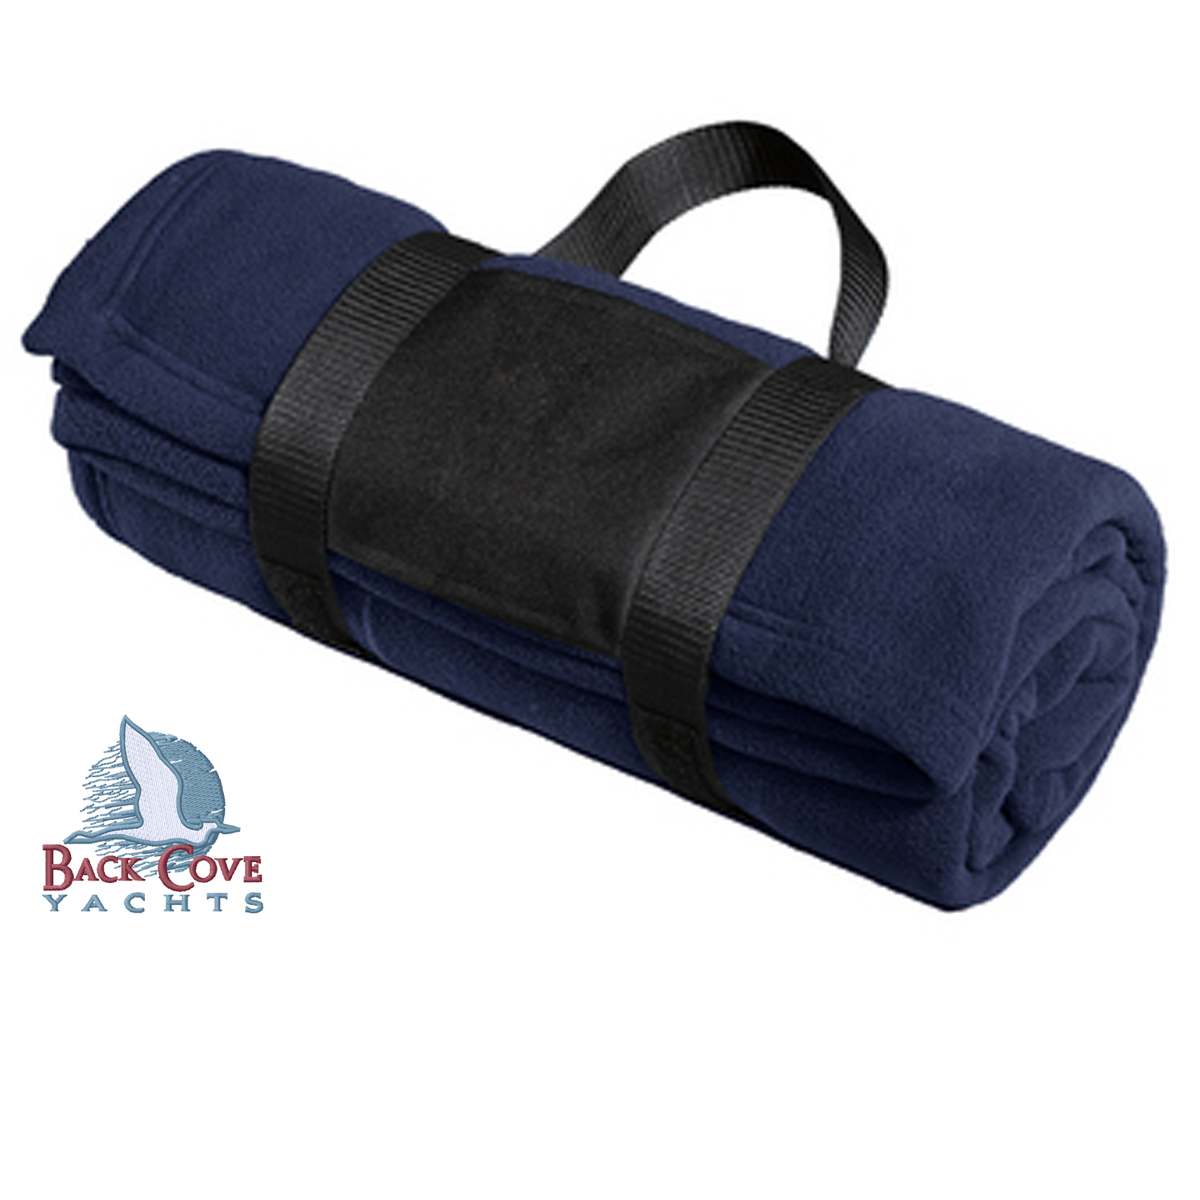 Back Cove Yachts - Fleece Blanket